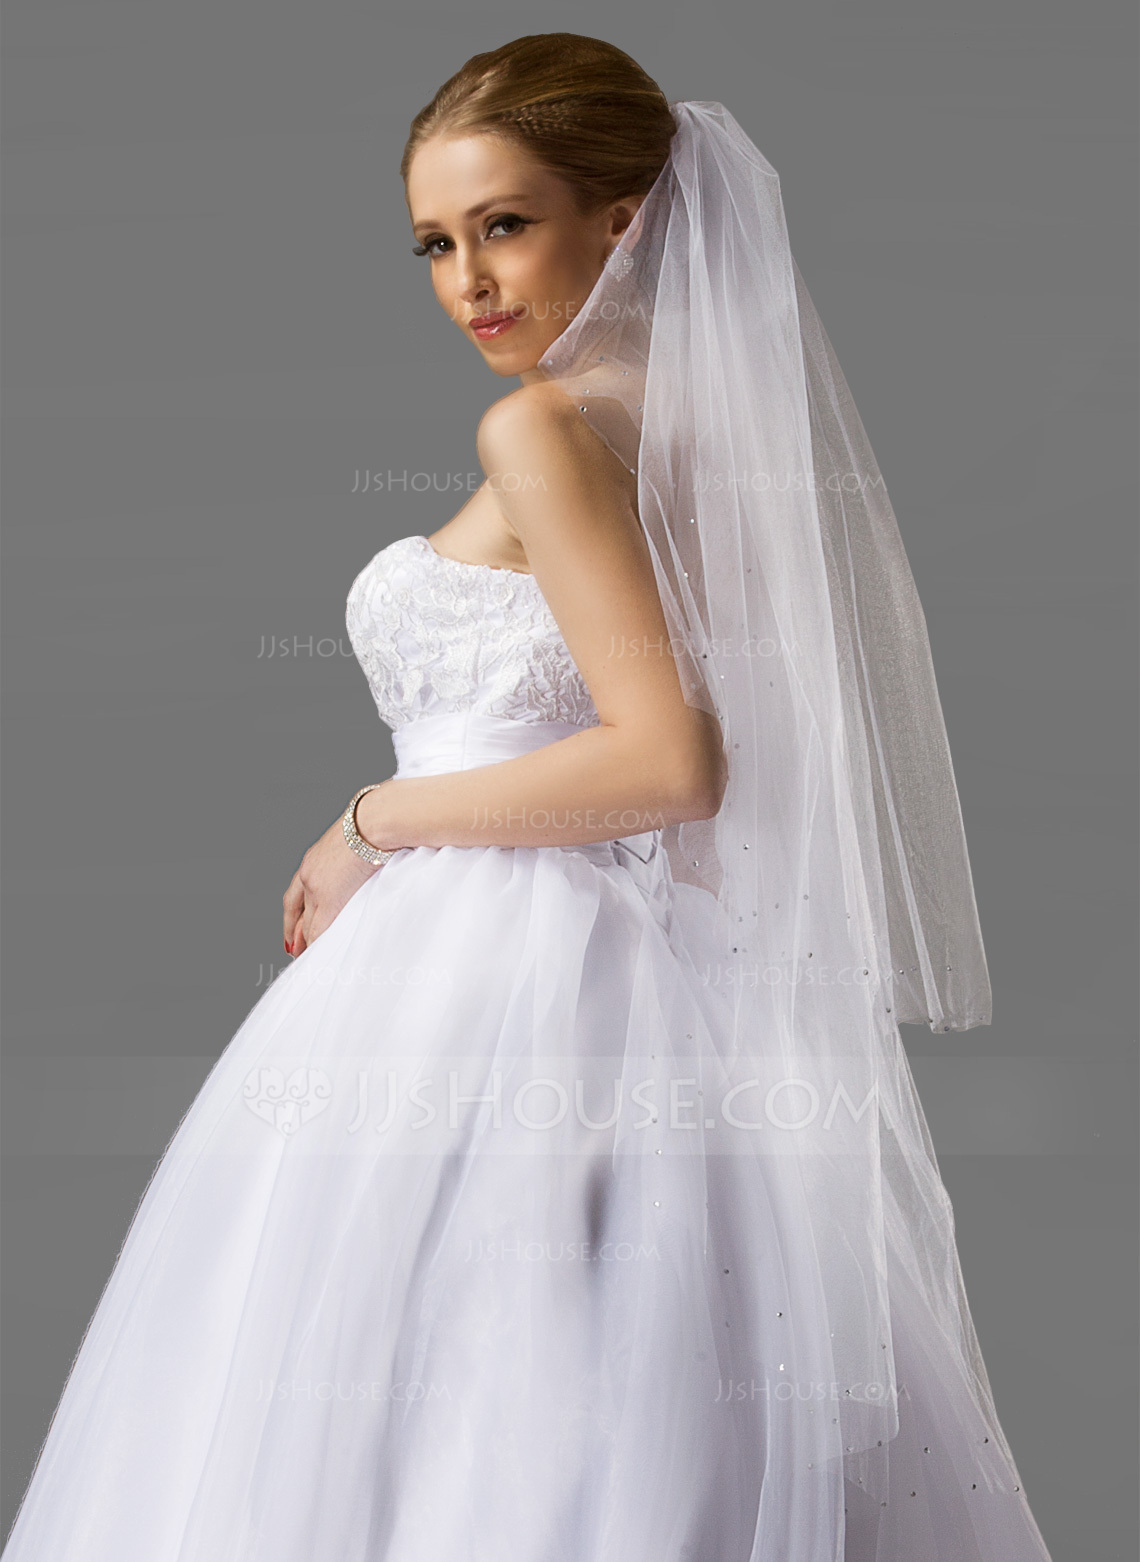 Two Tier Fingertip Bridal Veils With Cut Edge g wedding veils Wedding Veils Loading zoom